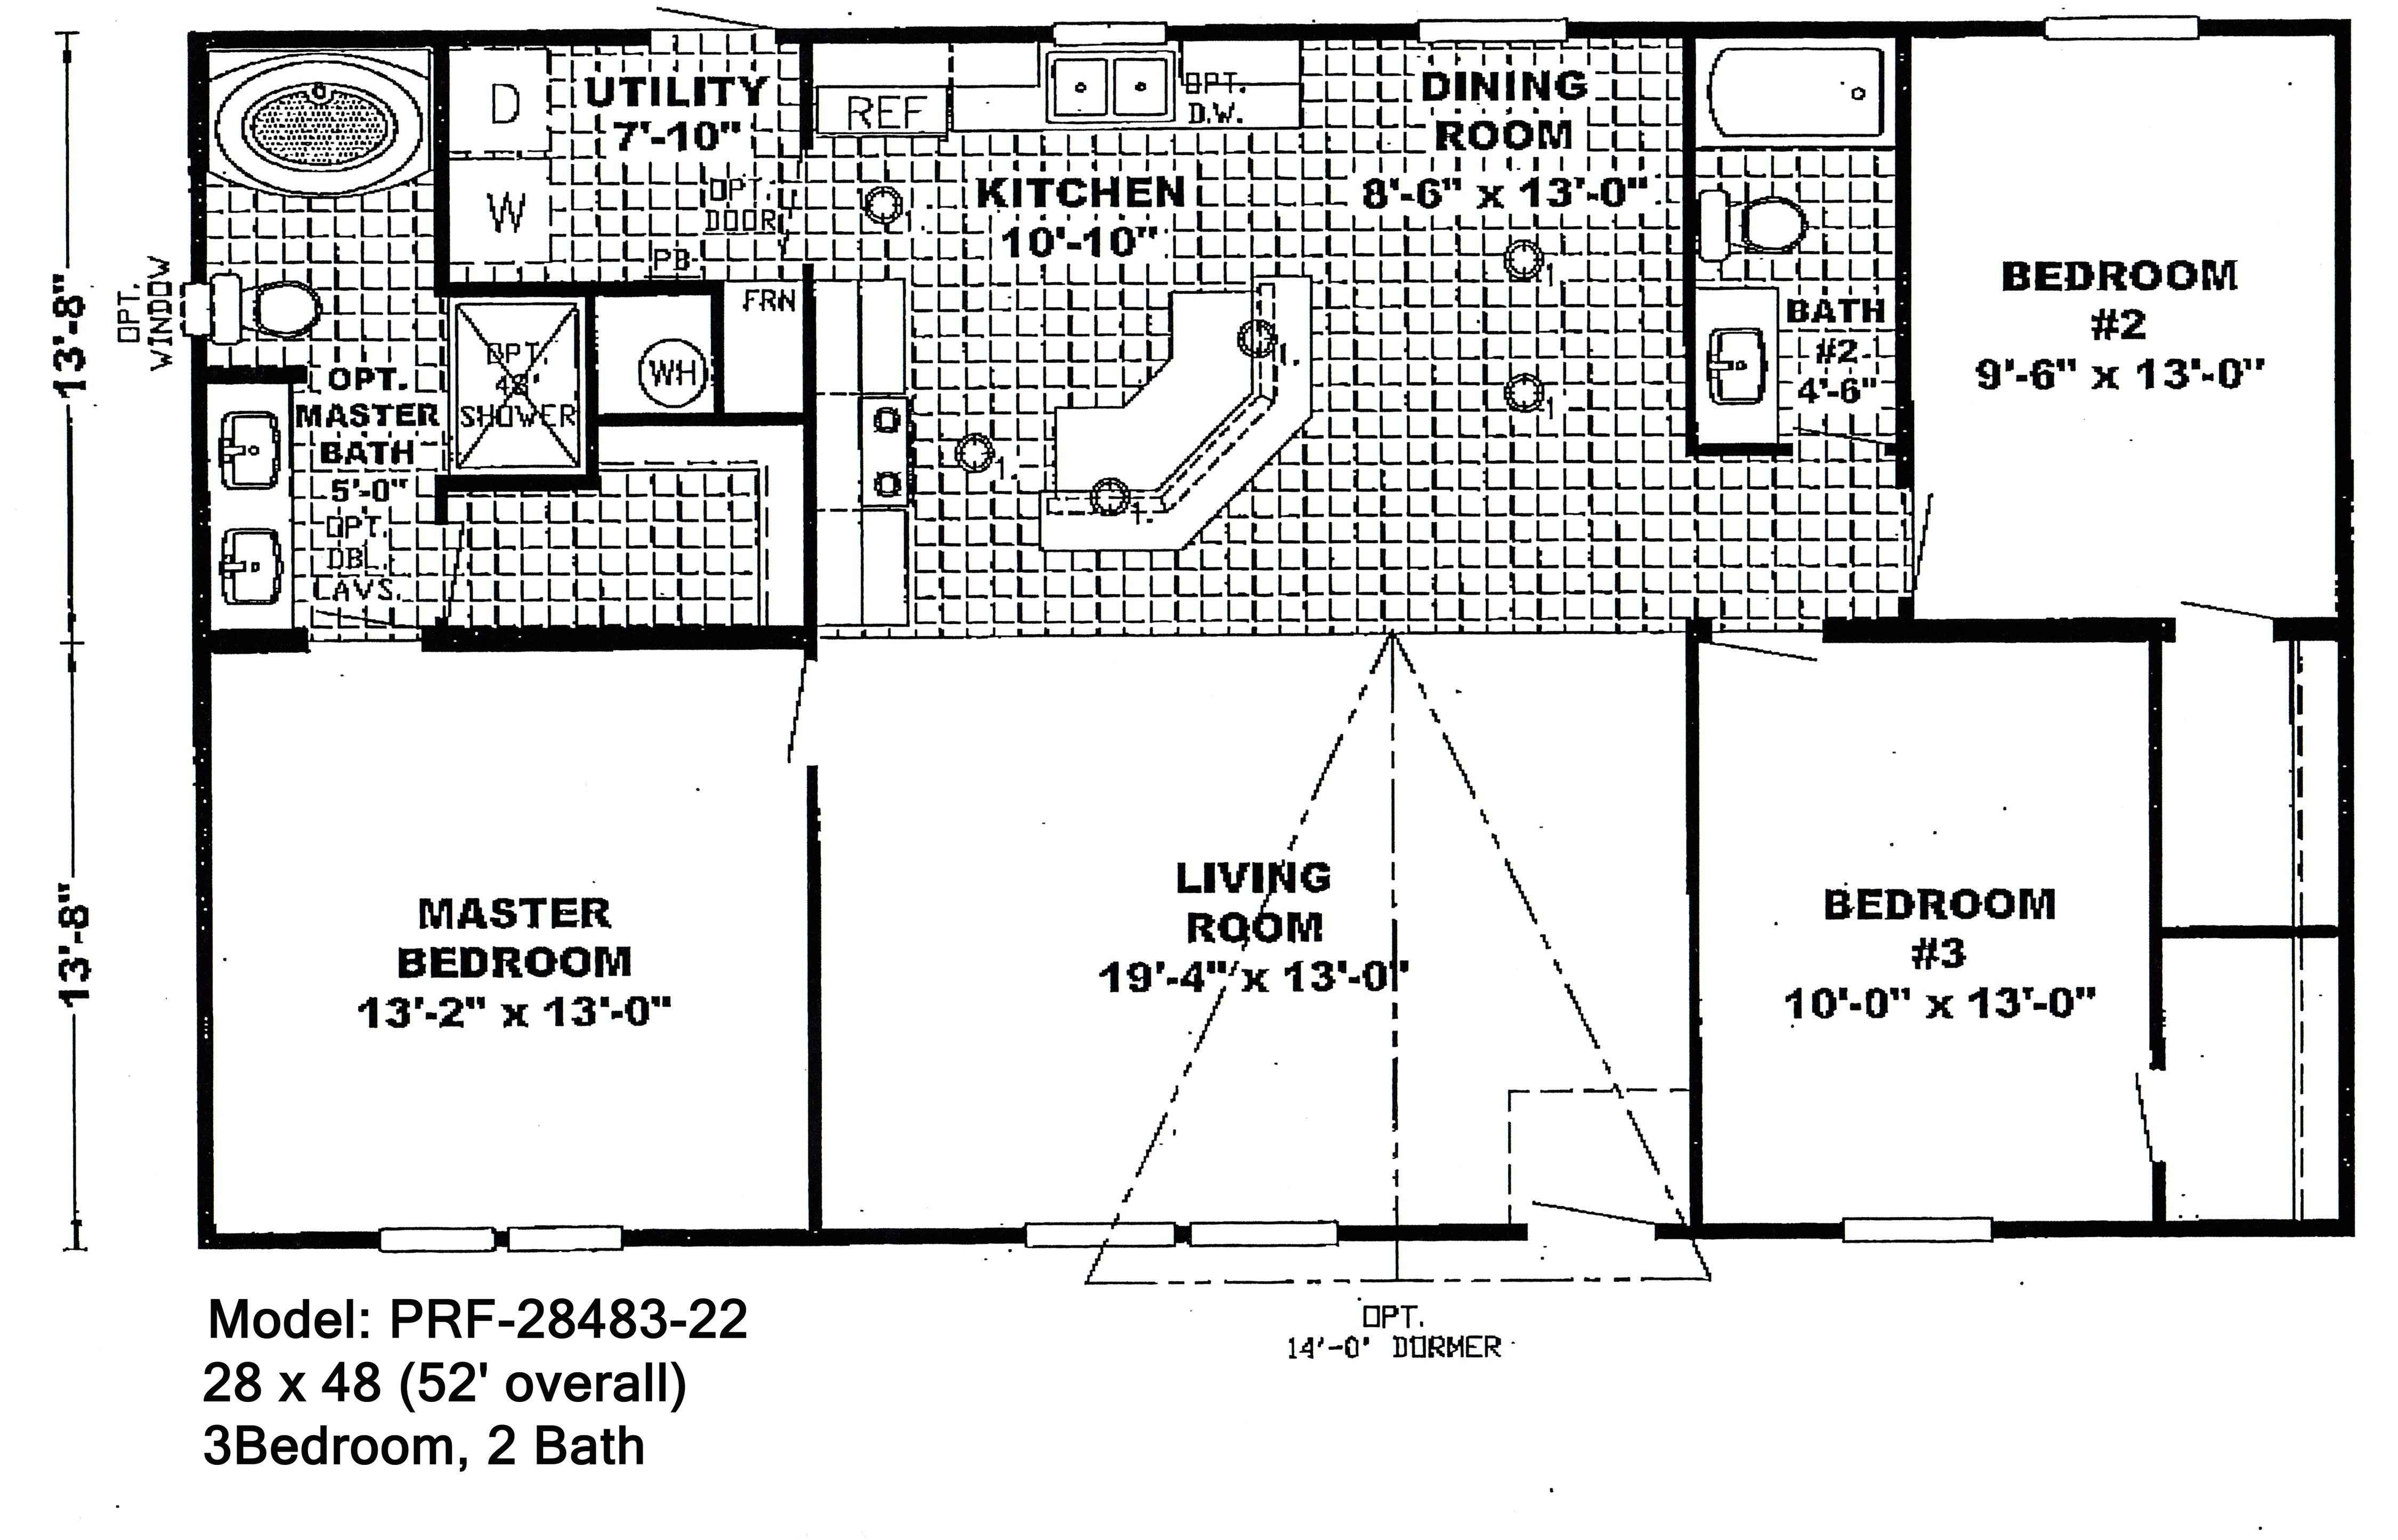 double wide floorplans 1830346